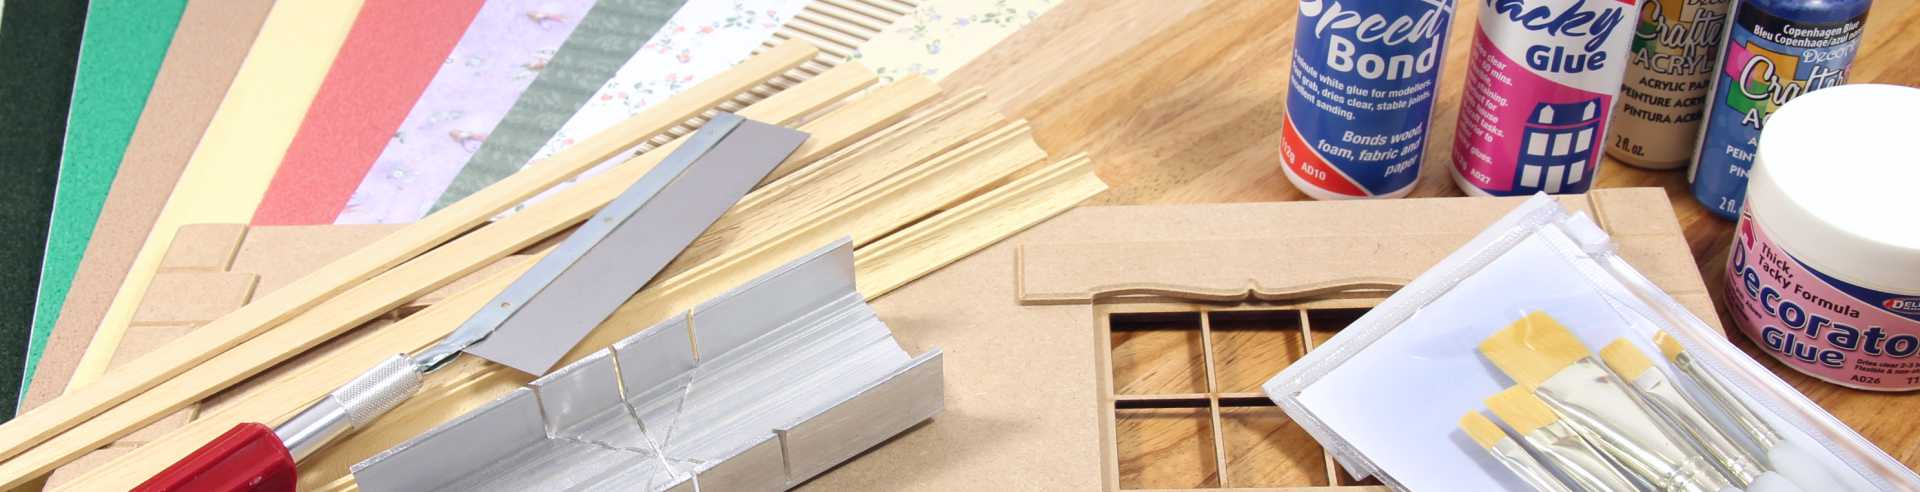 Dolls House & Decorating Materials